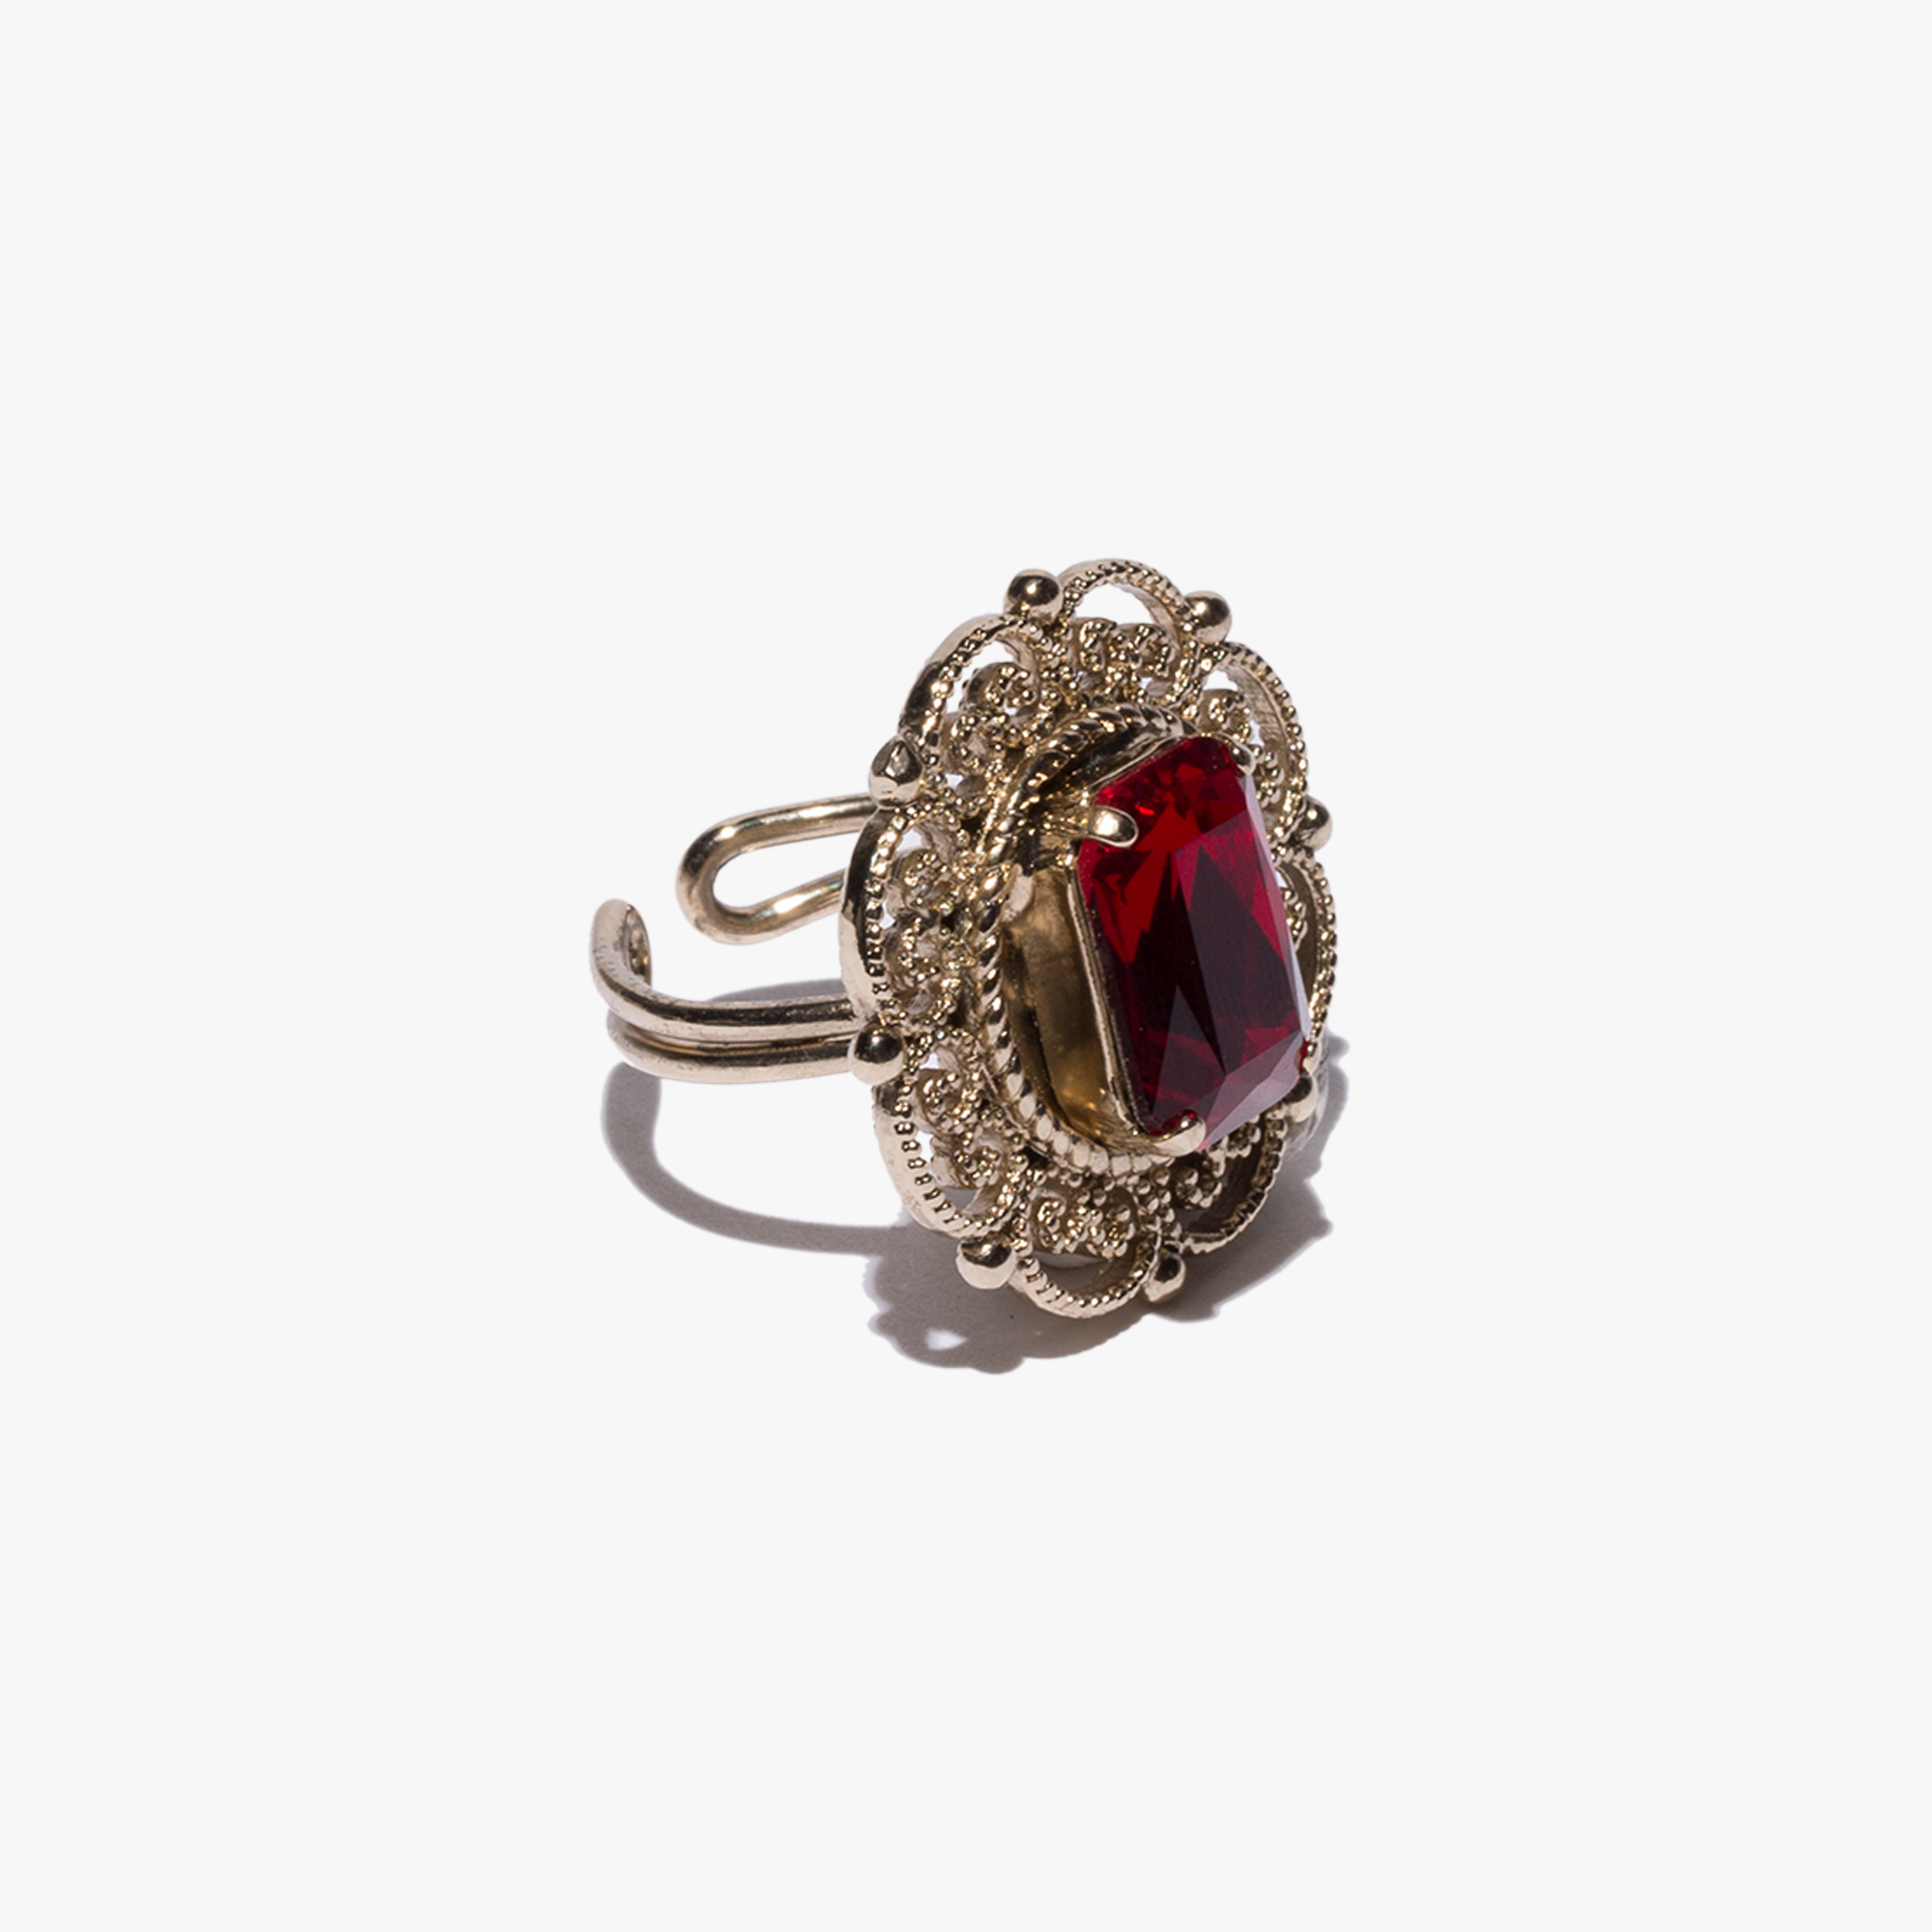 Brass and crystal ring